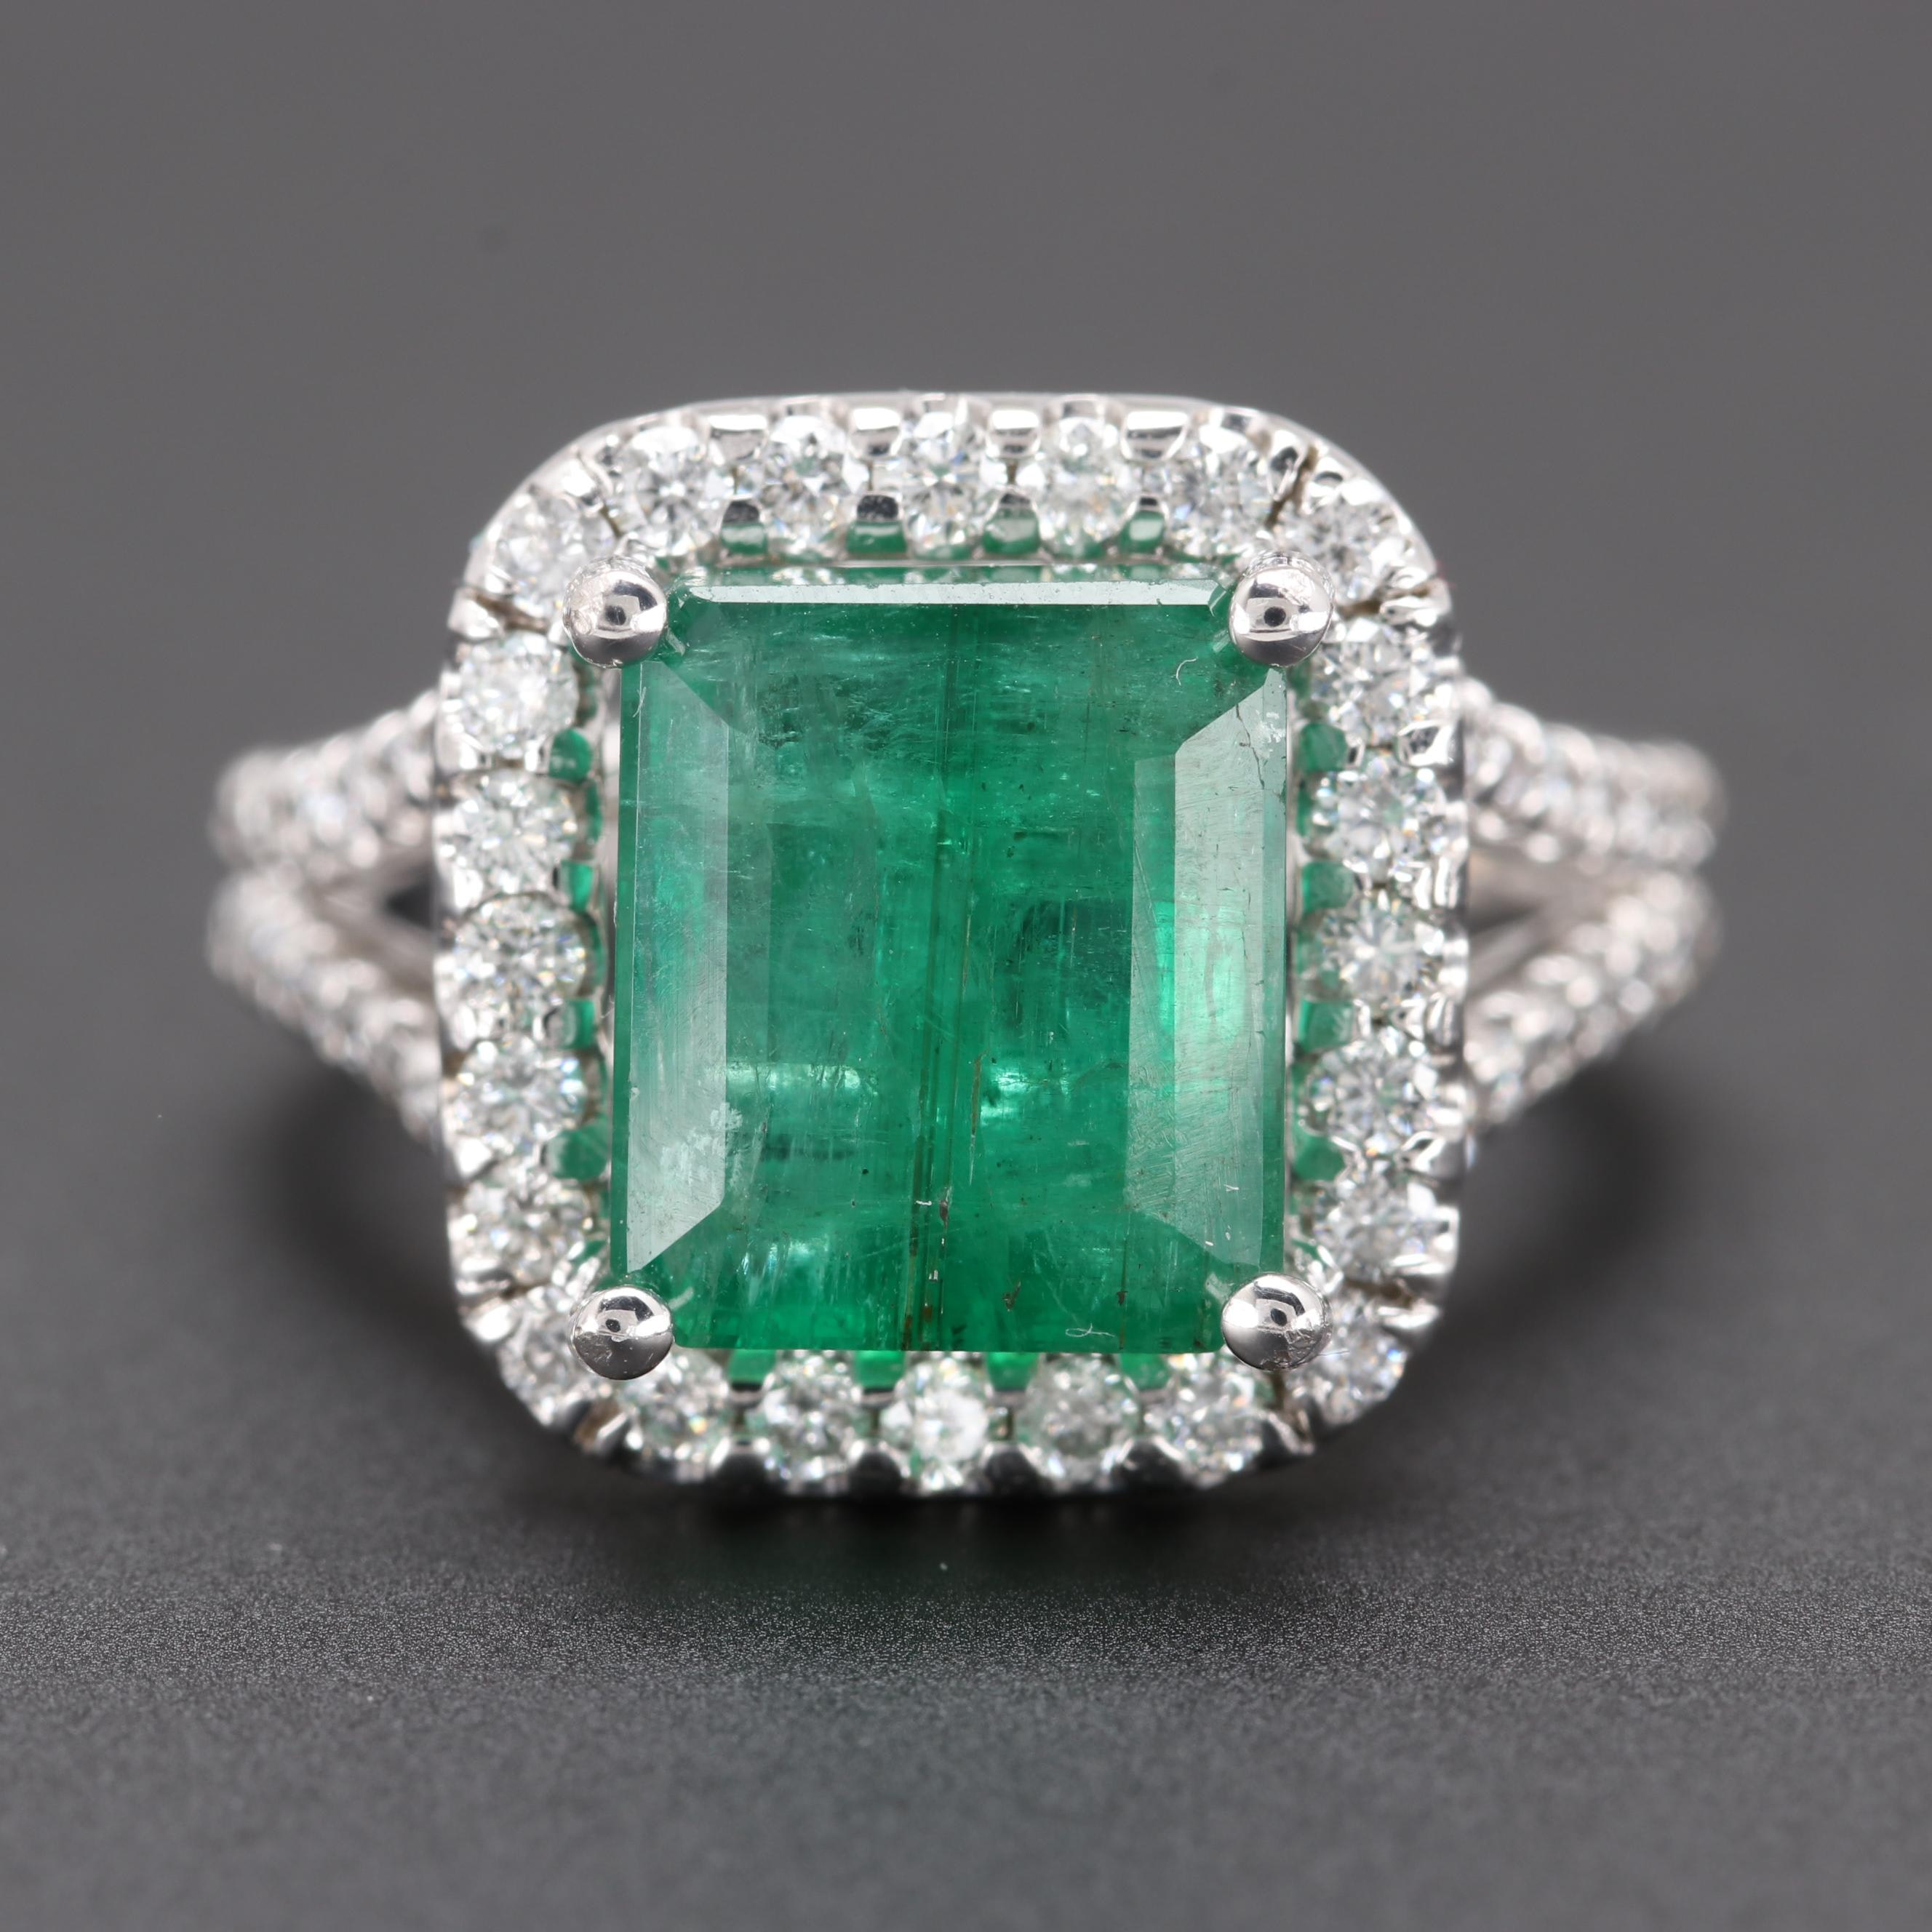 14K White Gold 3.20 CT Emerald and Diamond Ring